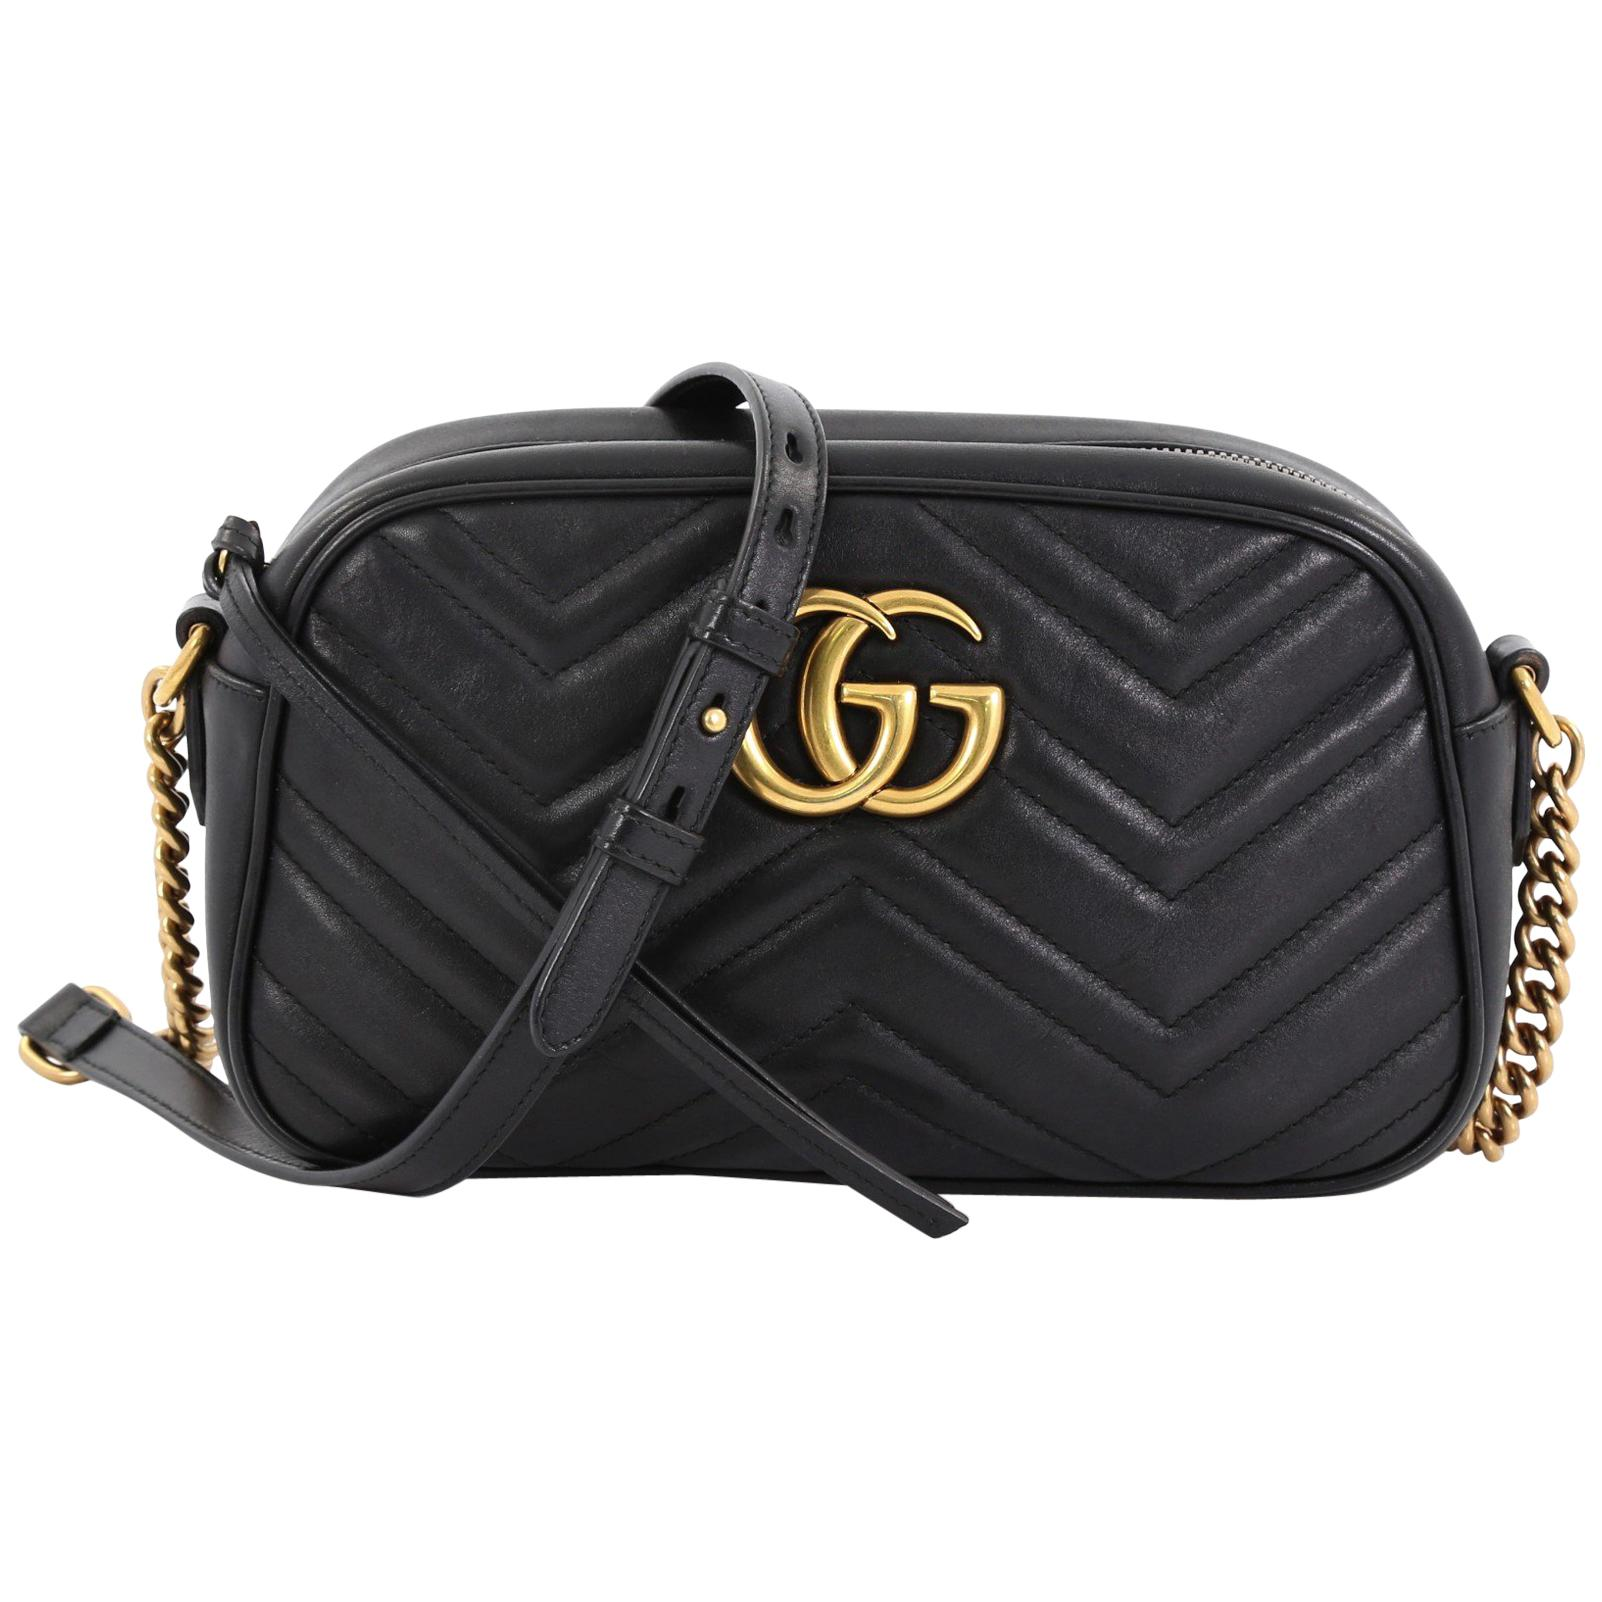 a33091914 Gucci GG Marmont Shoulder Bag Matelasse Leather Small at 1stdibs